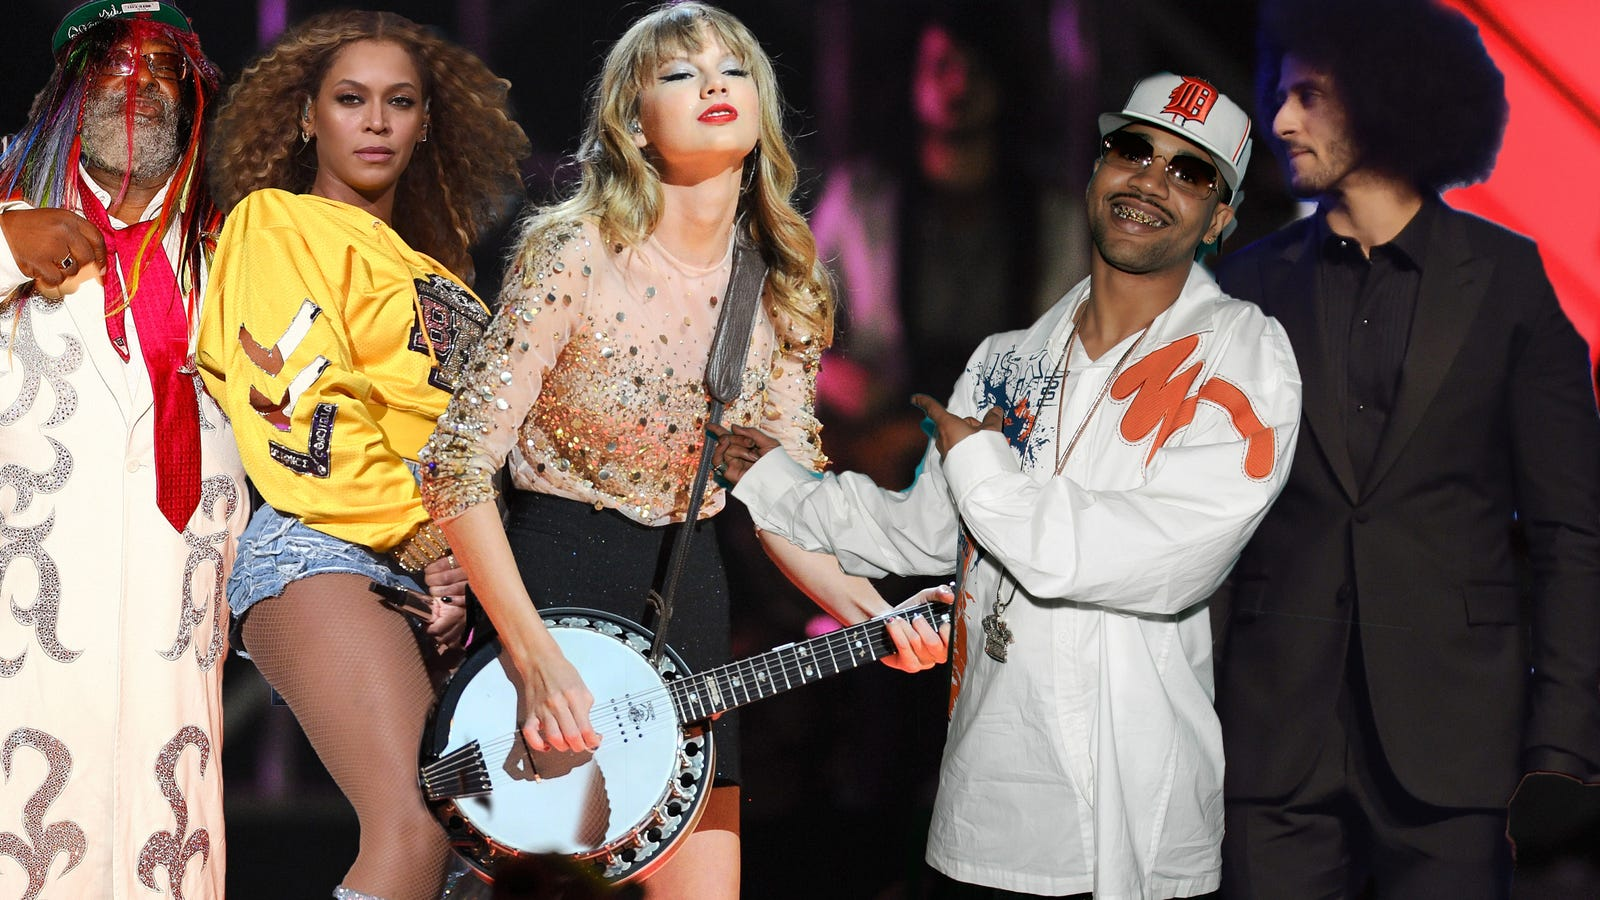 Don't Disrespect Our Anthems: 6 Black Songs Off Limits to Taylor Swift and Other White Musicians